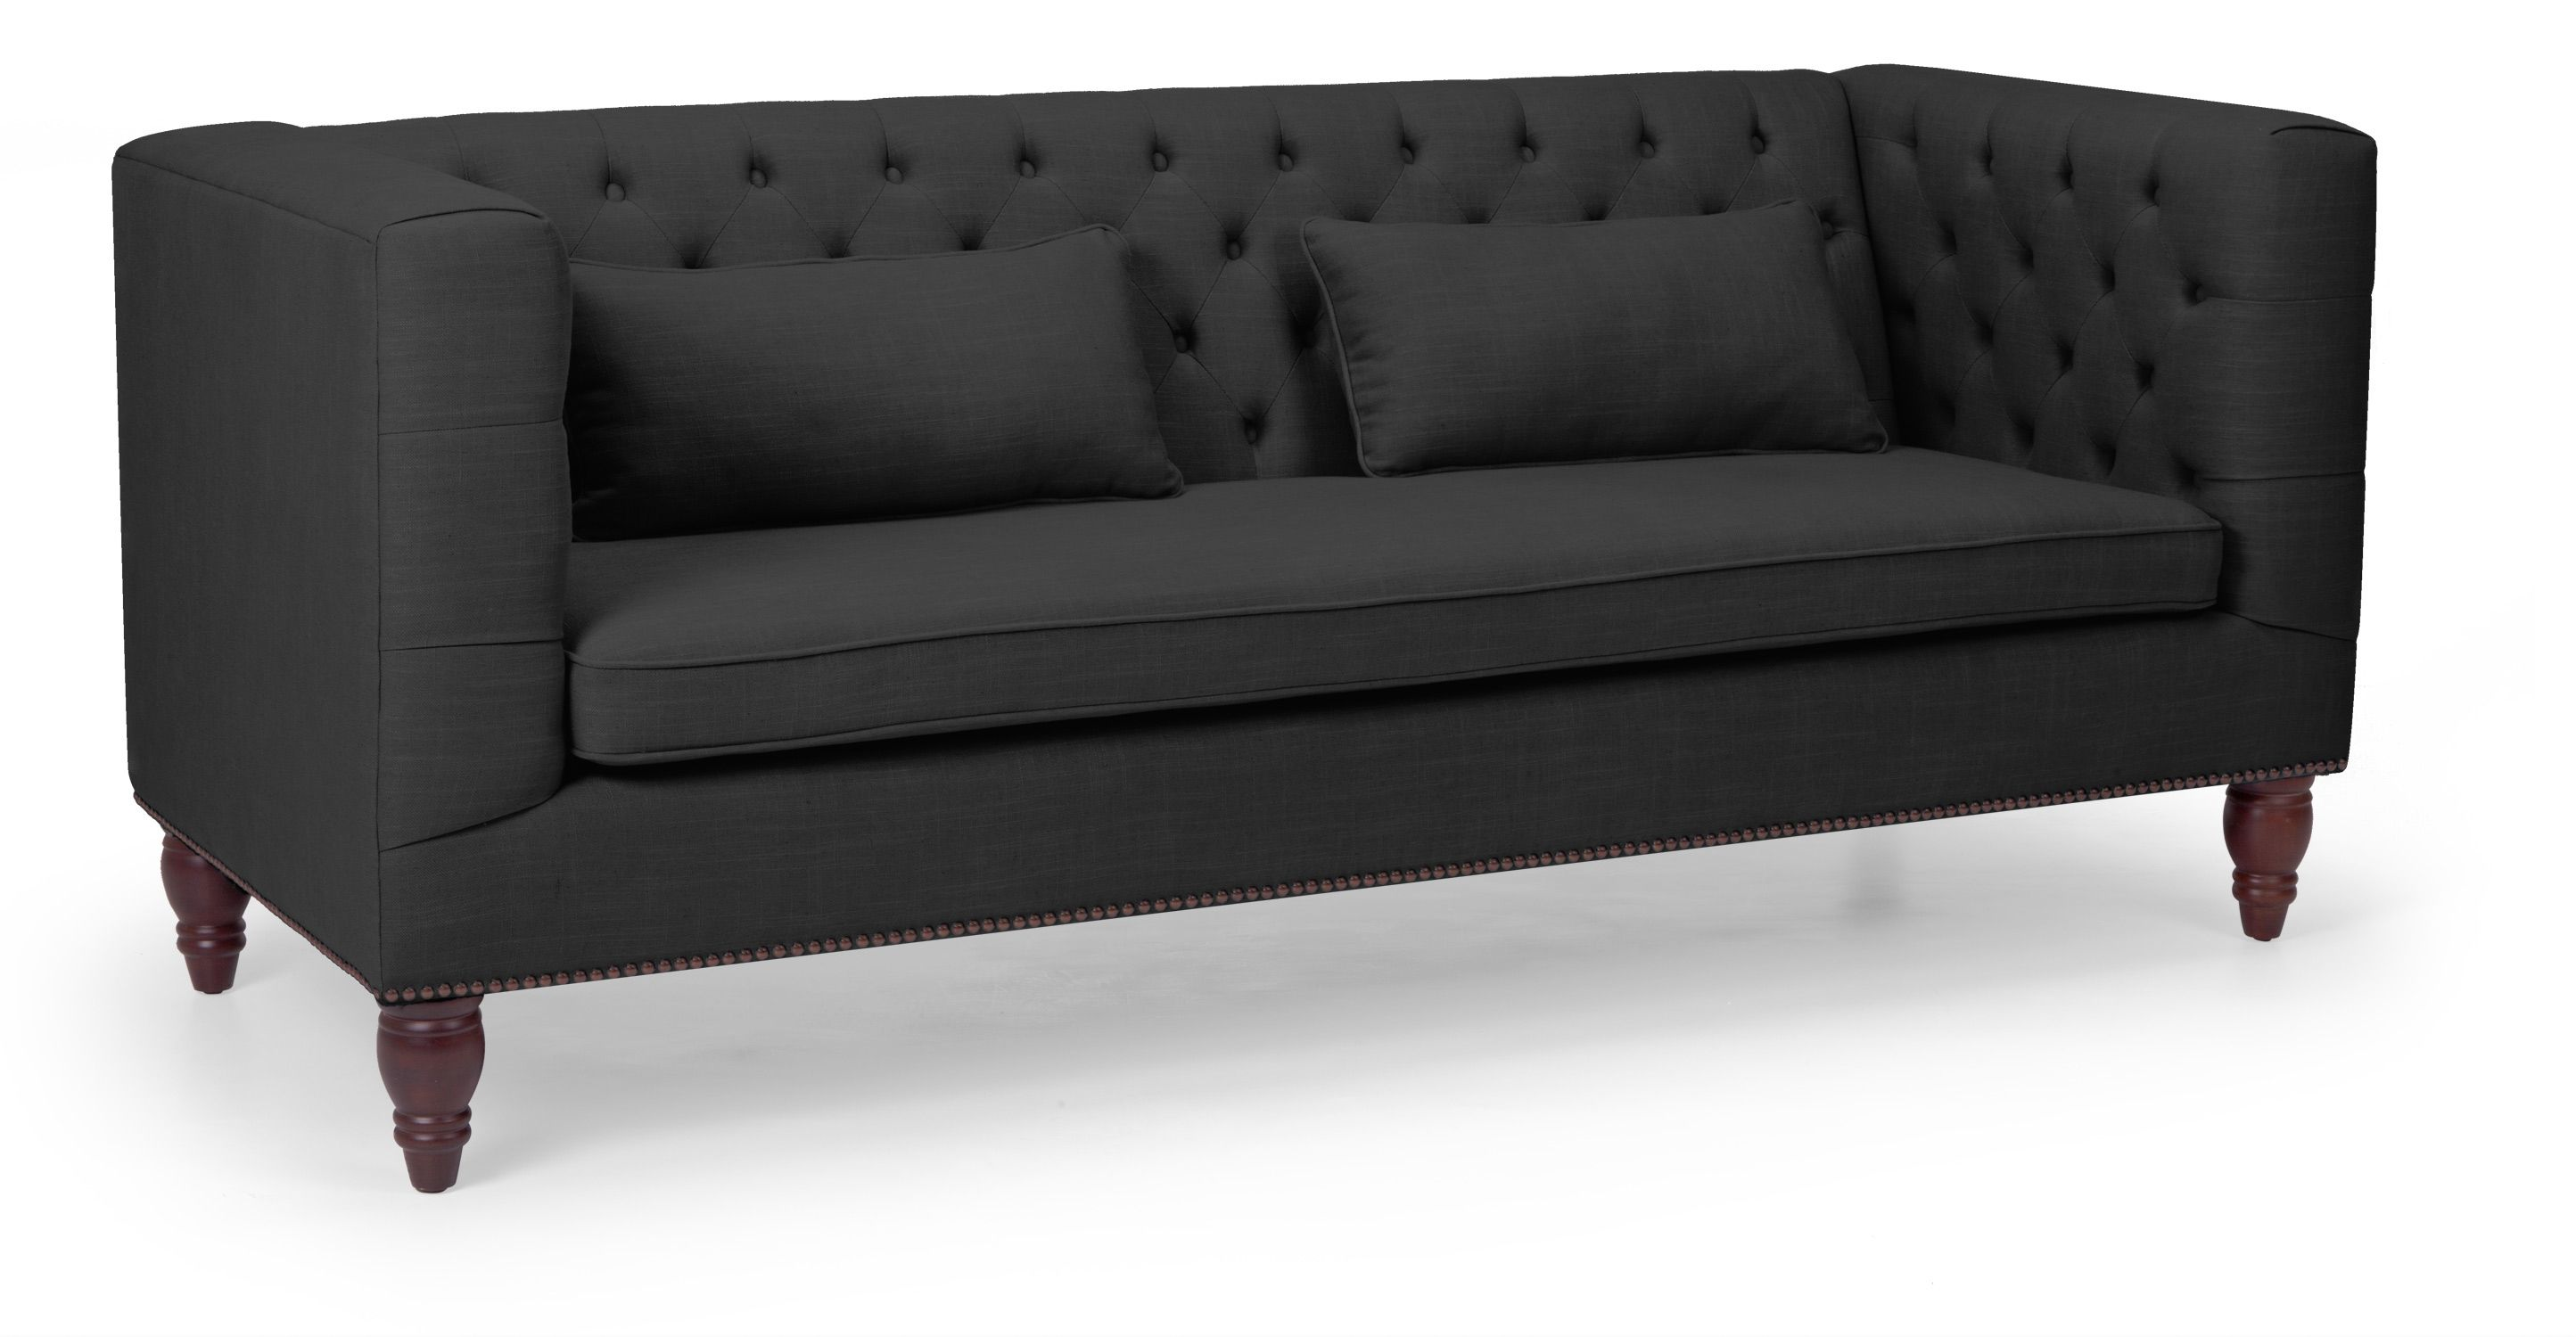 Sofas And Stuff Fentbury Flynn 3 Seater Sofa In Midnight Black Made My Dream House